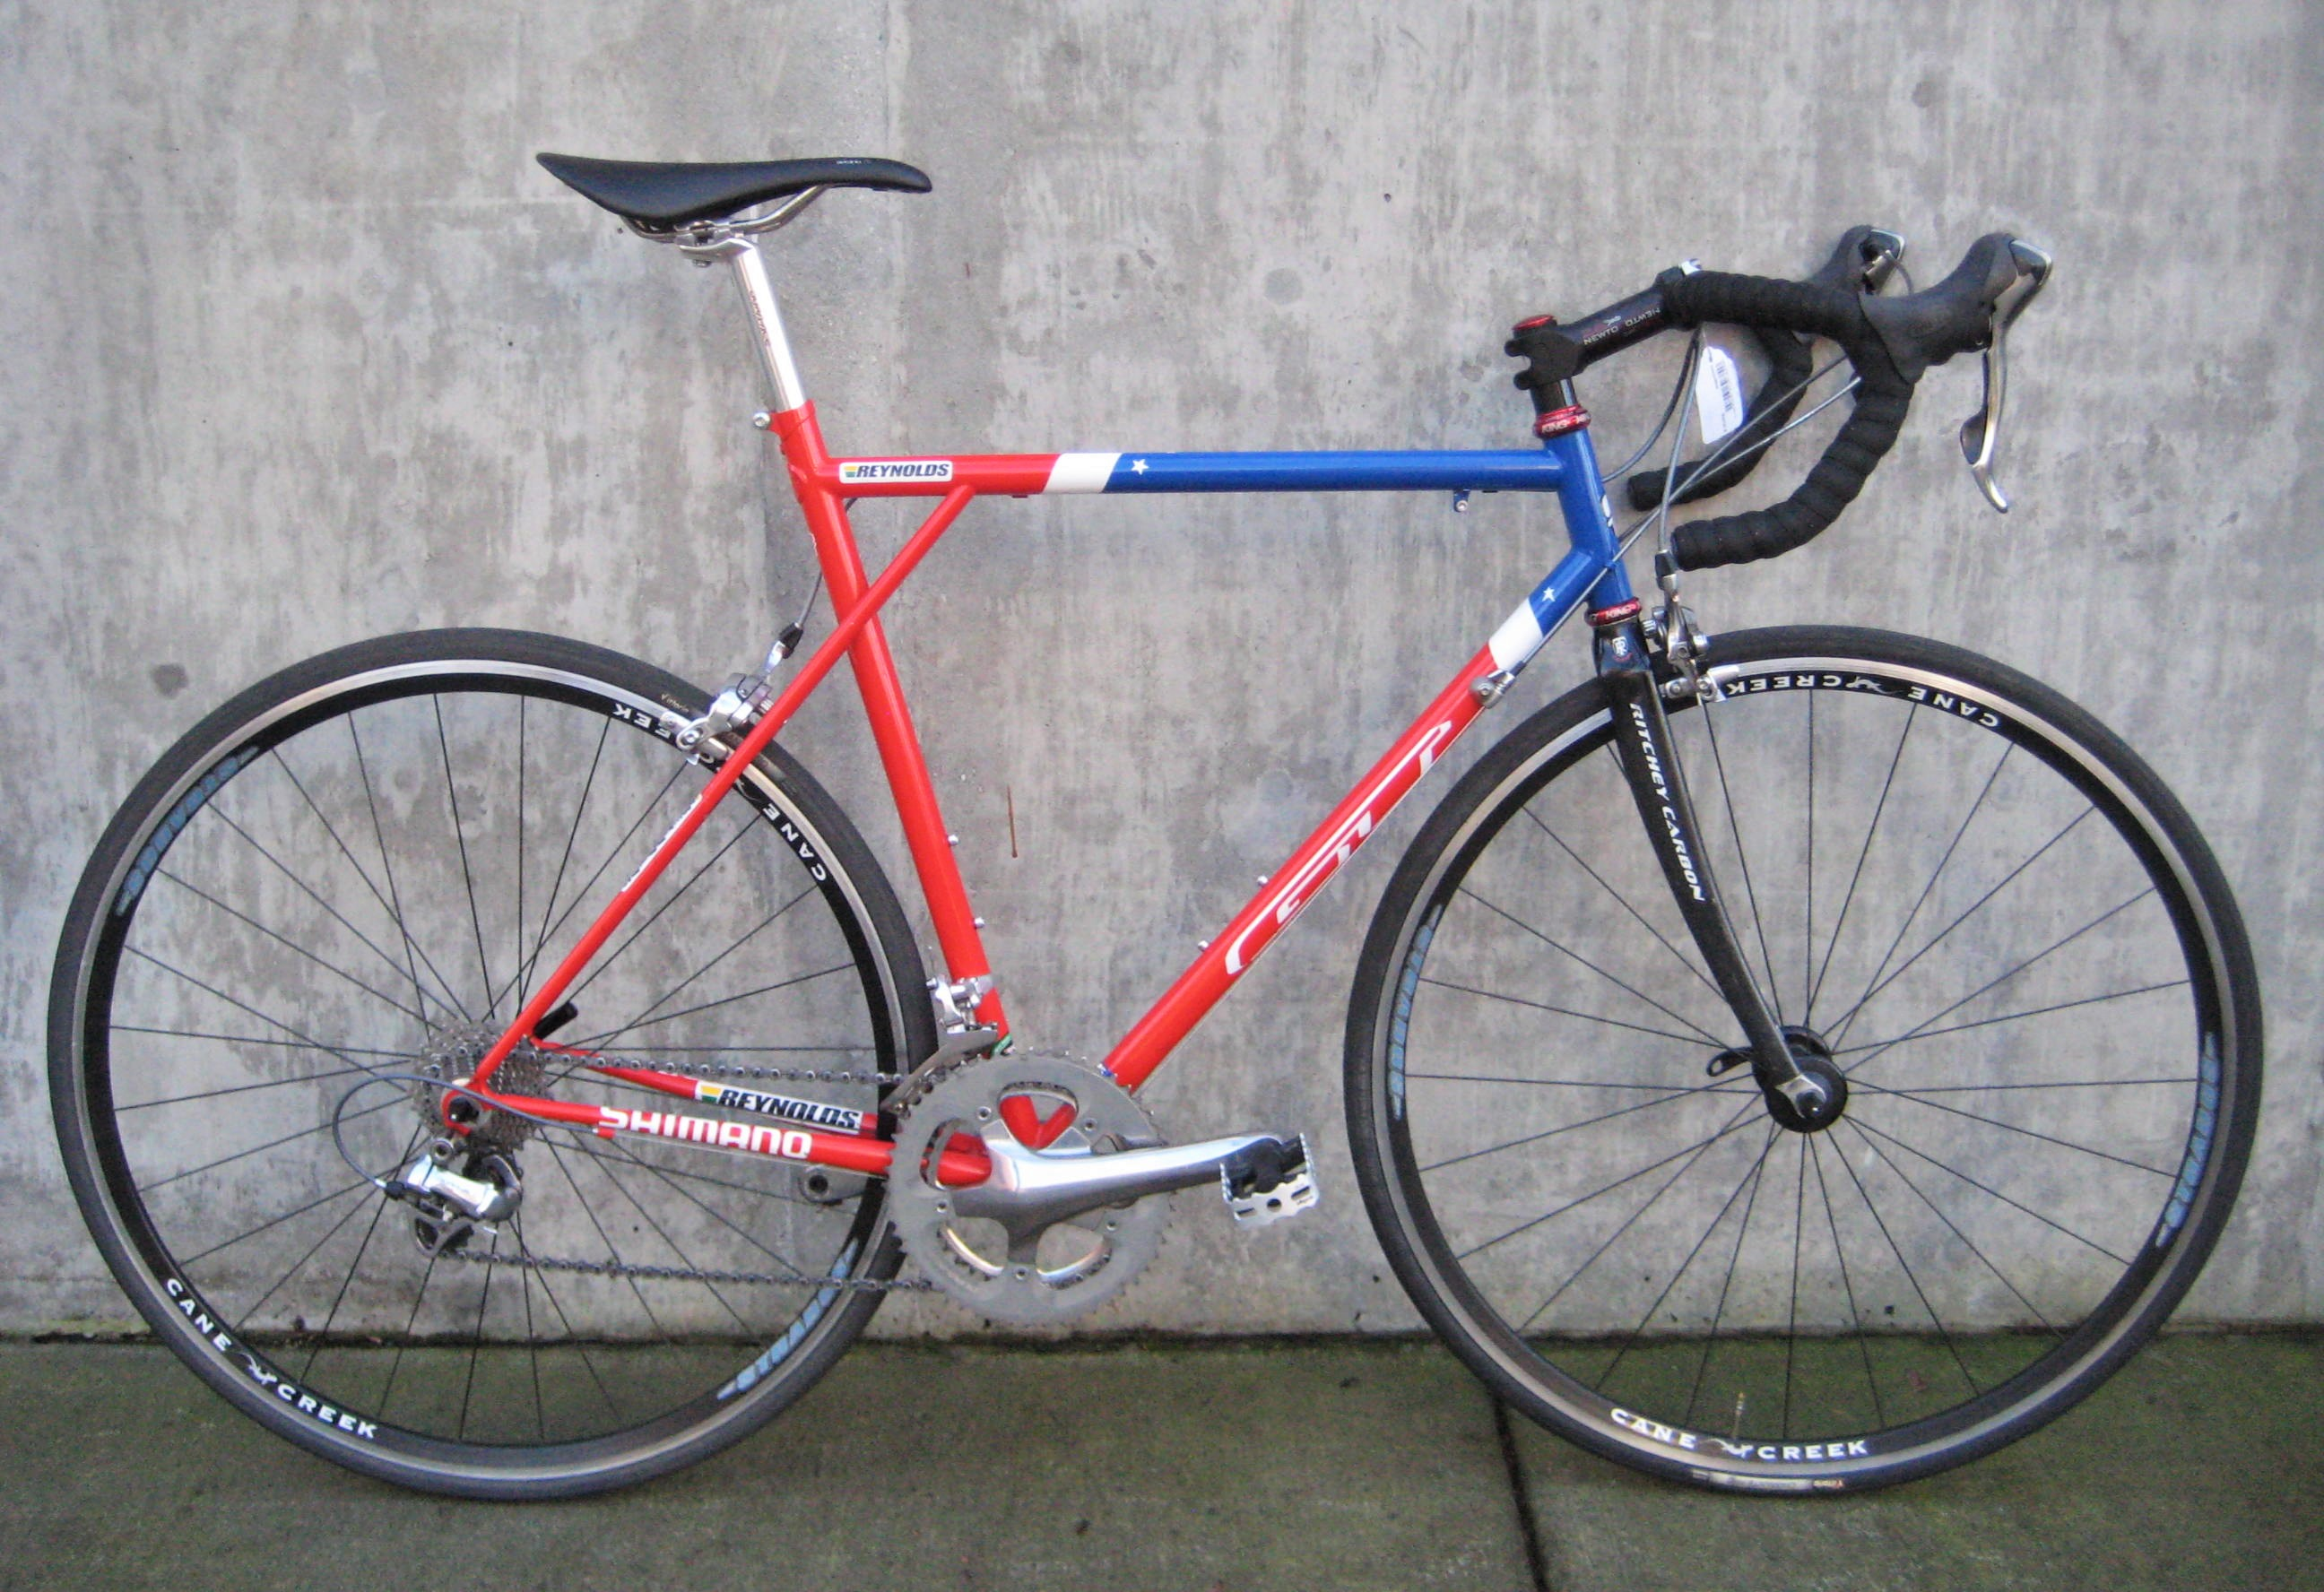 US Cycling team GT road bike for sale at Classic Cycle  Classic